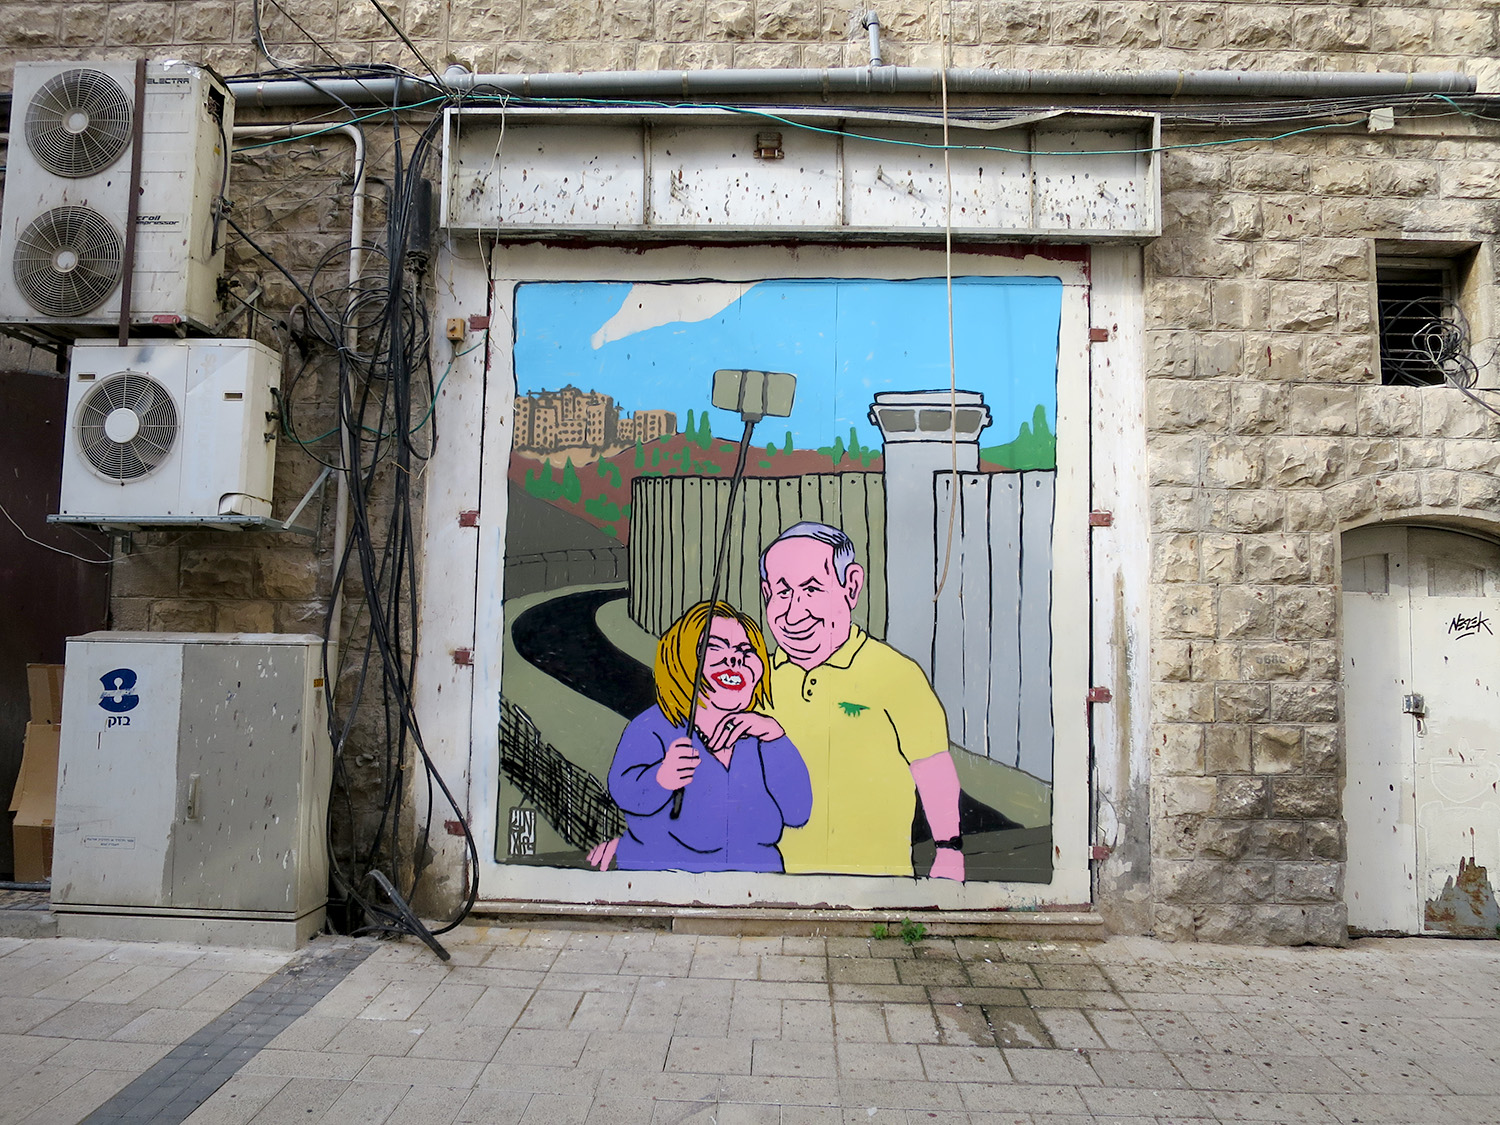 broken fingaz unga graffiti israel gaza occupation peace separation wall  selfie stick haifa  street art